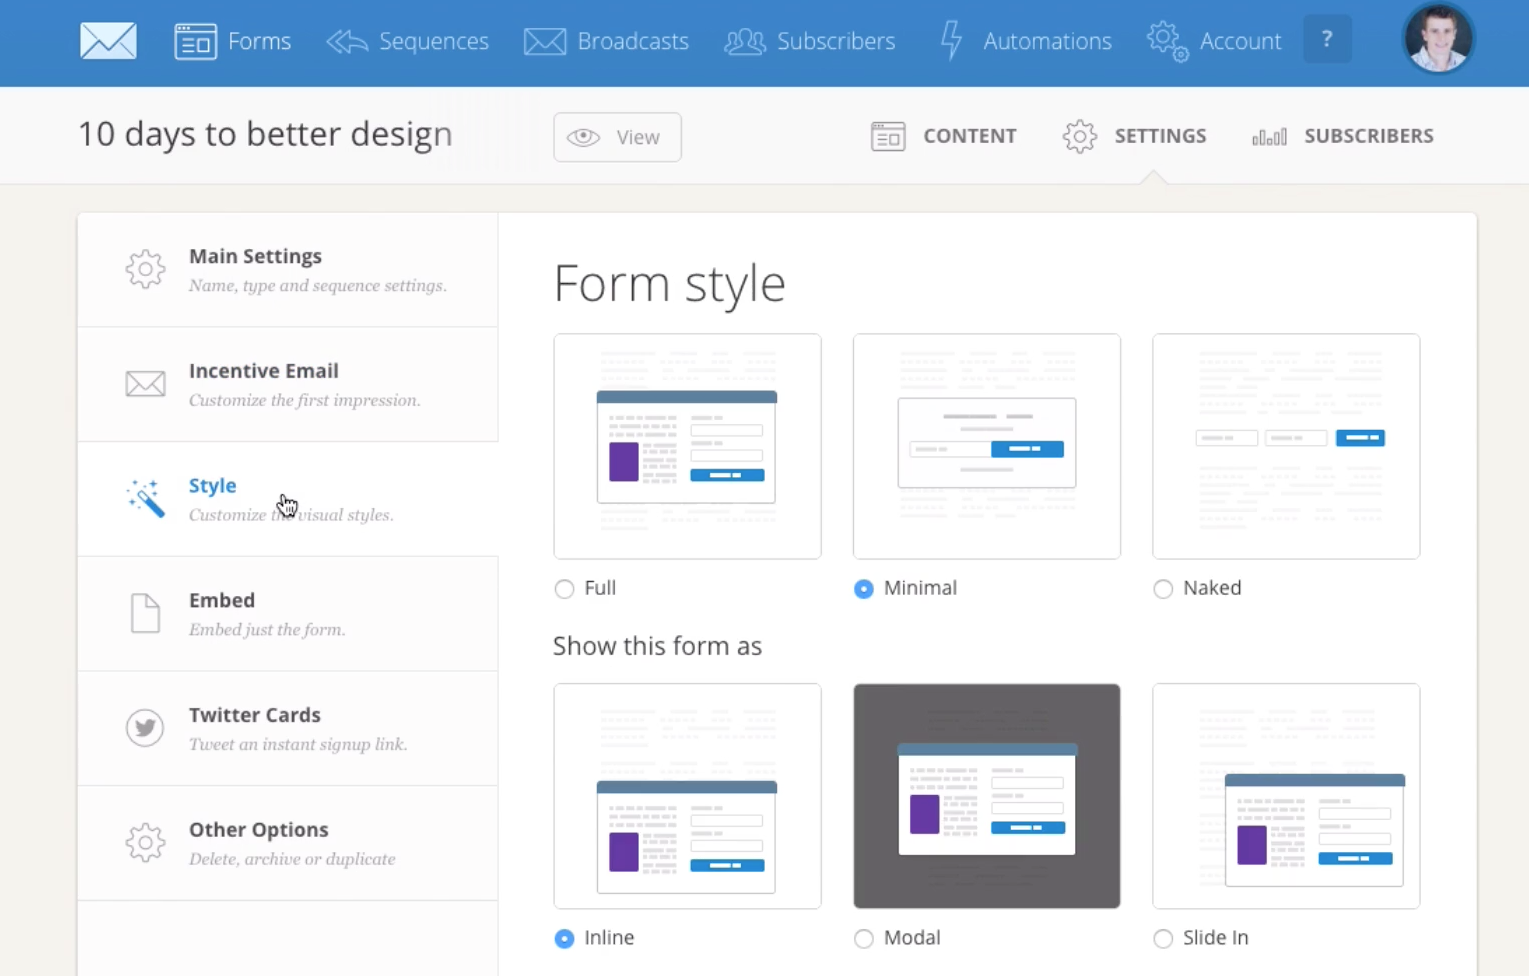 ConvertKit allows users to create opt-in forms in a range of styles, including inline and slide in forms